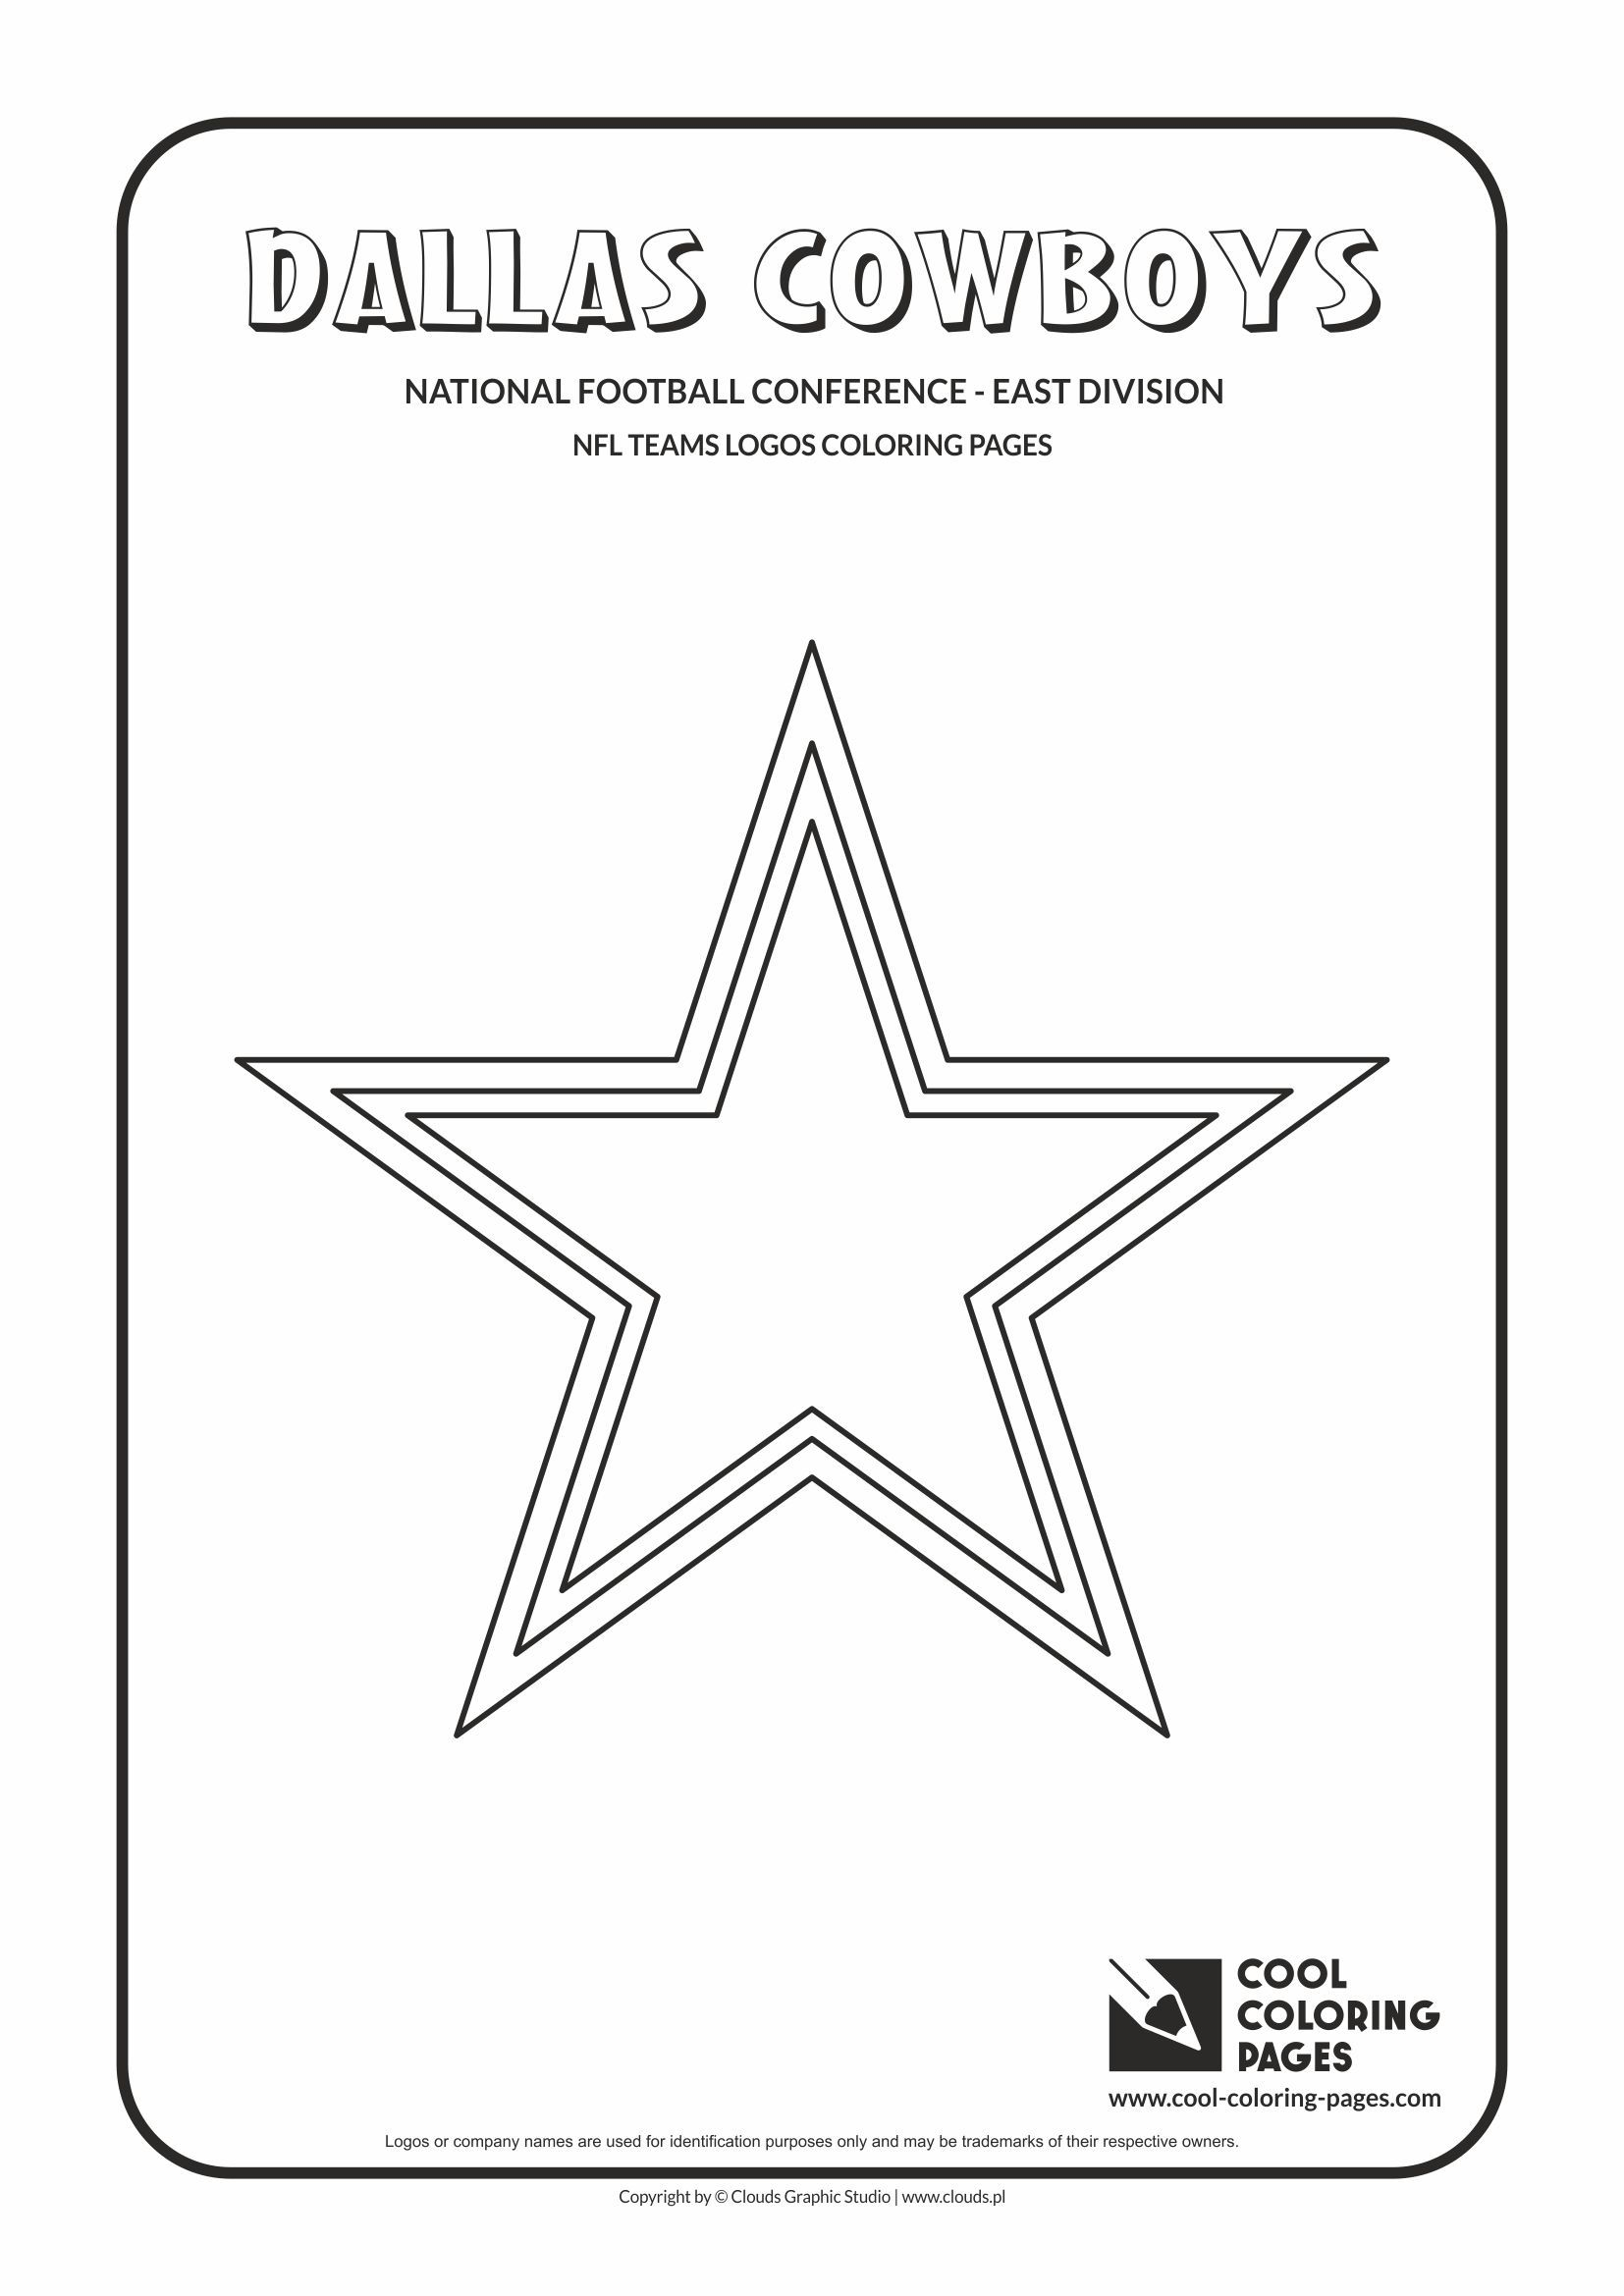 Dallas Cowboys Nfl American Football Teams Logos Coloring Pages